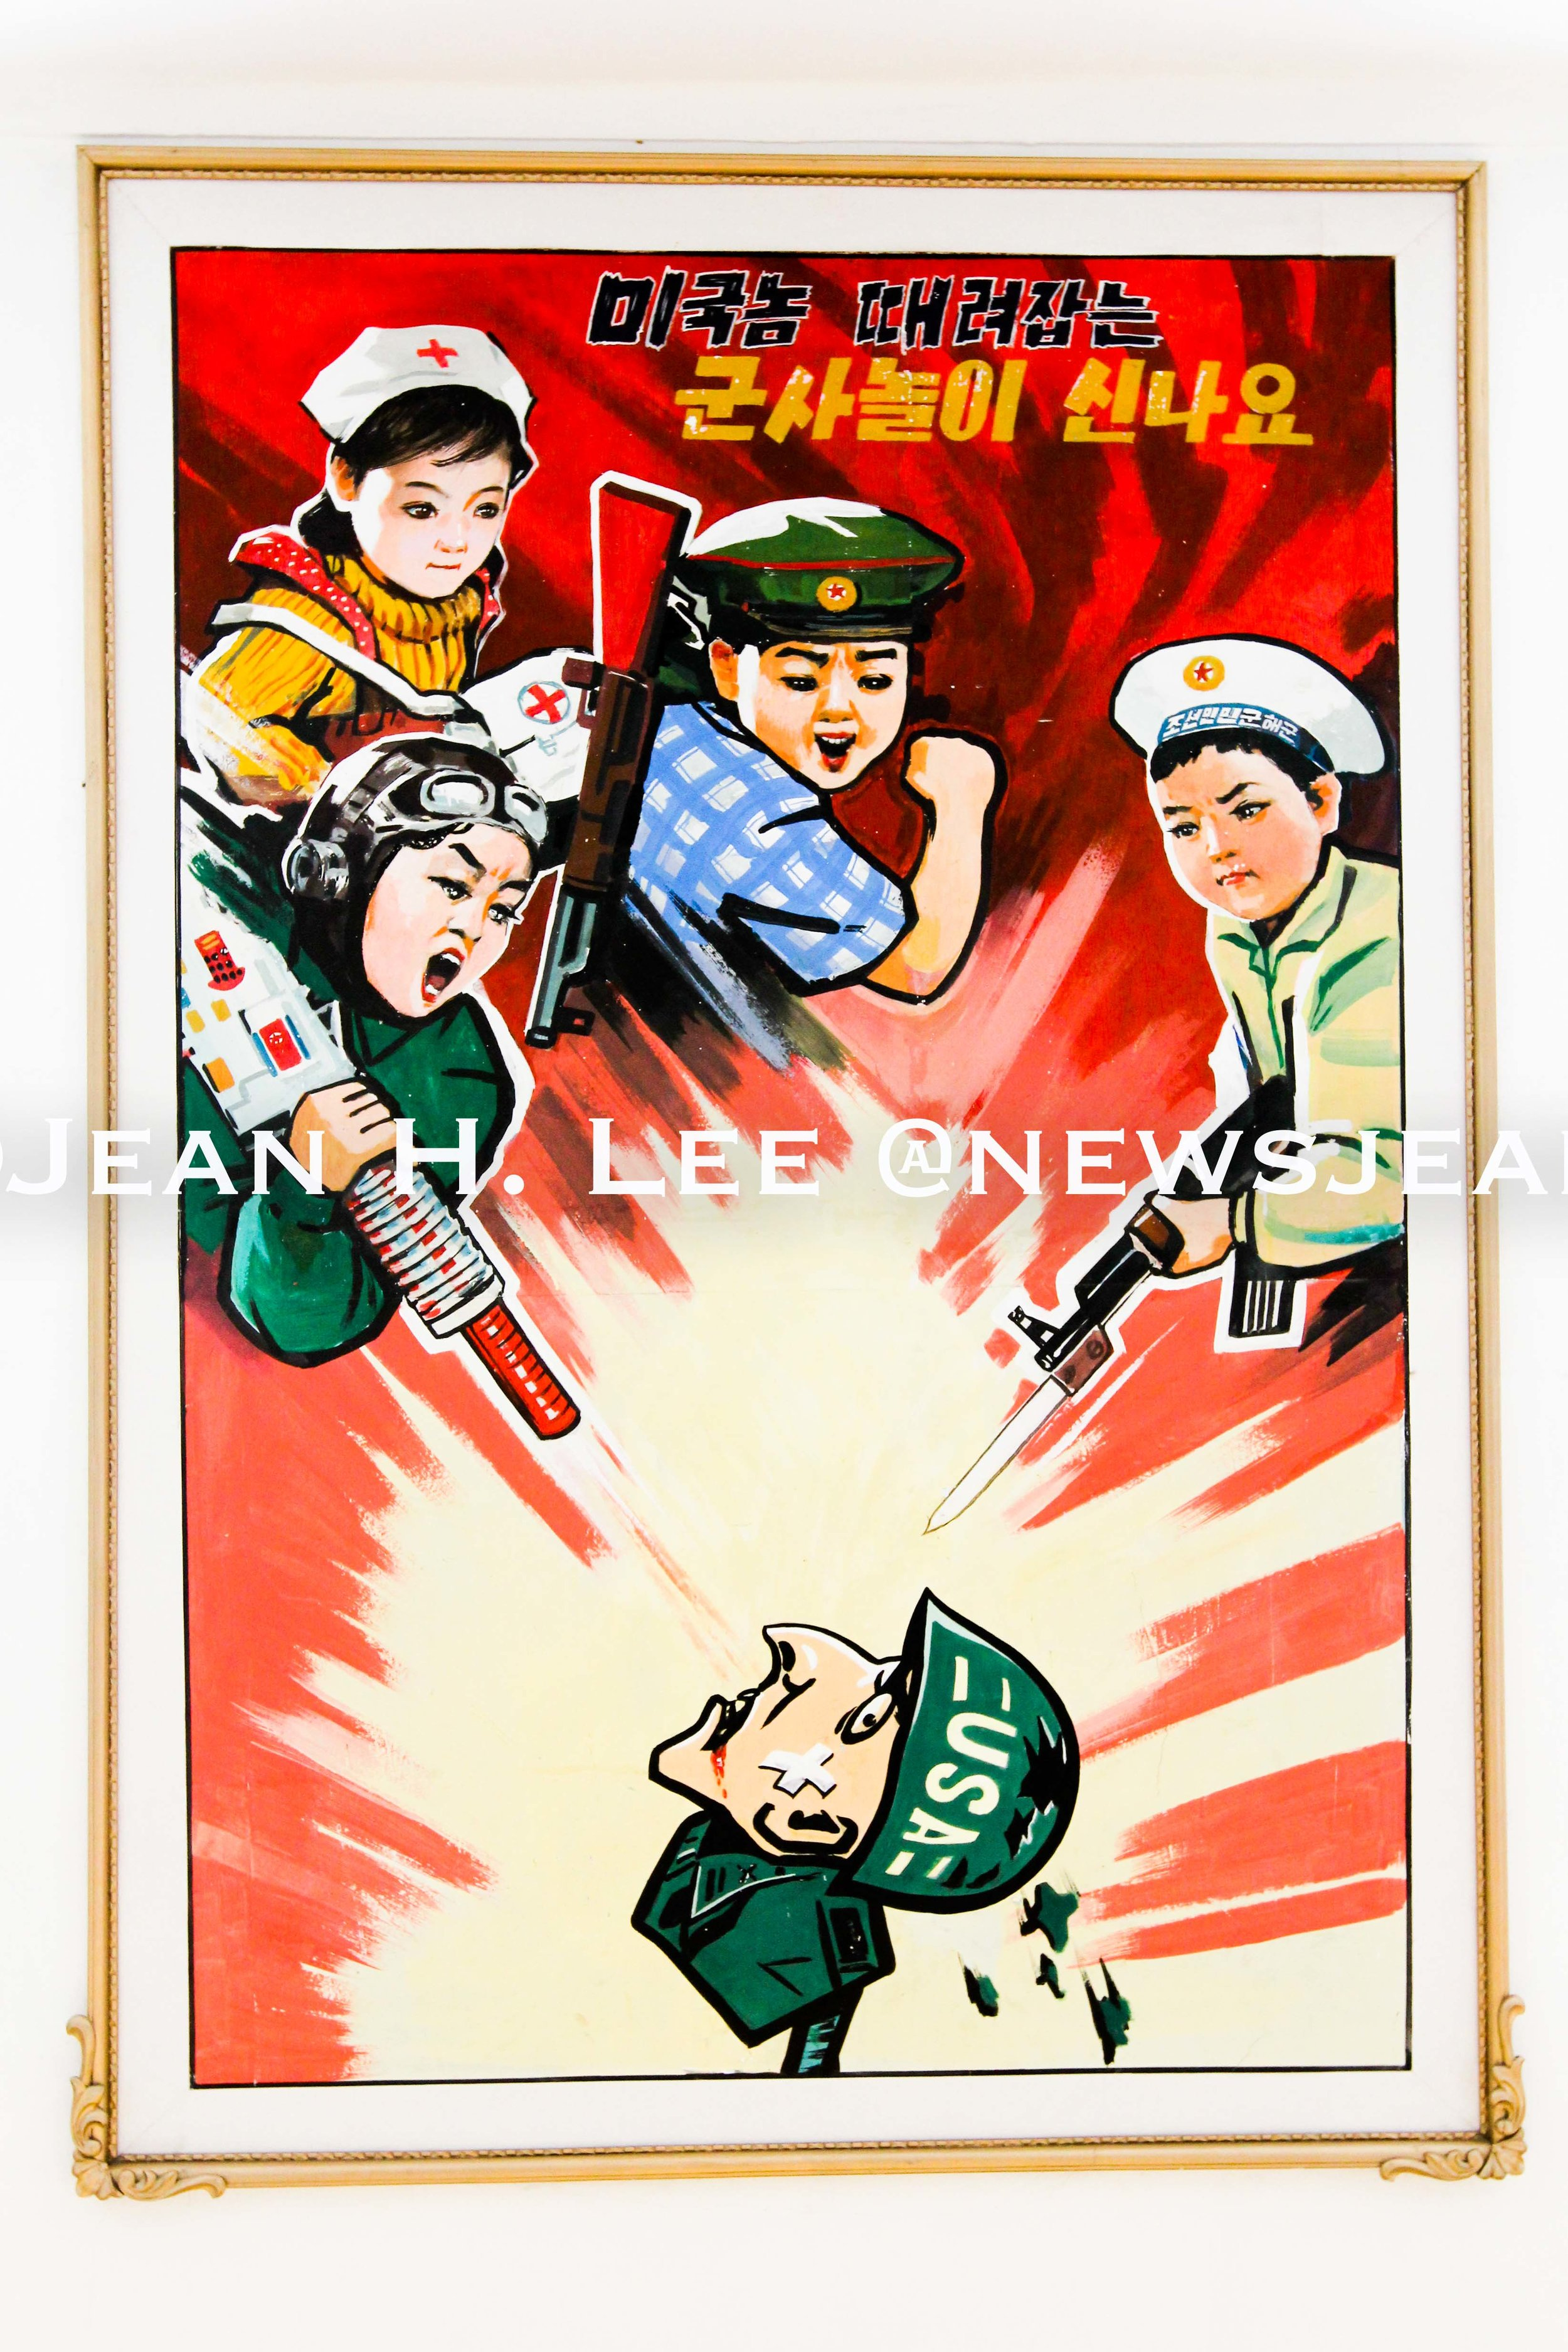 PYONGYANG, North Korea _ A poster on the wall at Kyongsang Kindergarten in Pyongyang, North Korea, depicting North Korean children attacking a U.S. soldier. (Photo credit: Jean H. Lee)